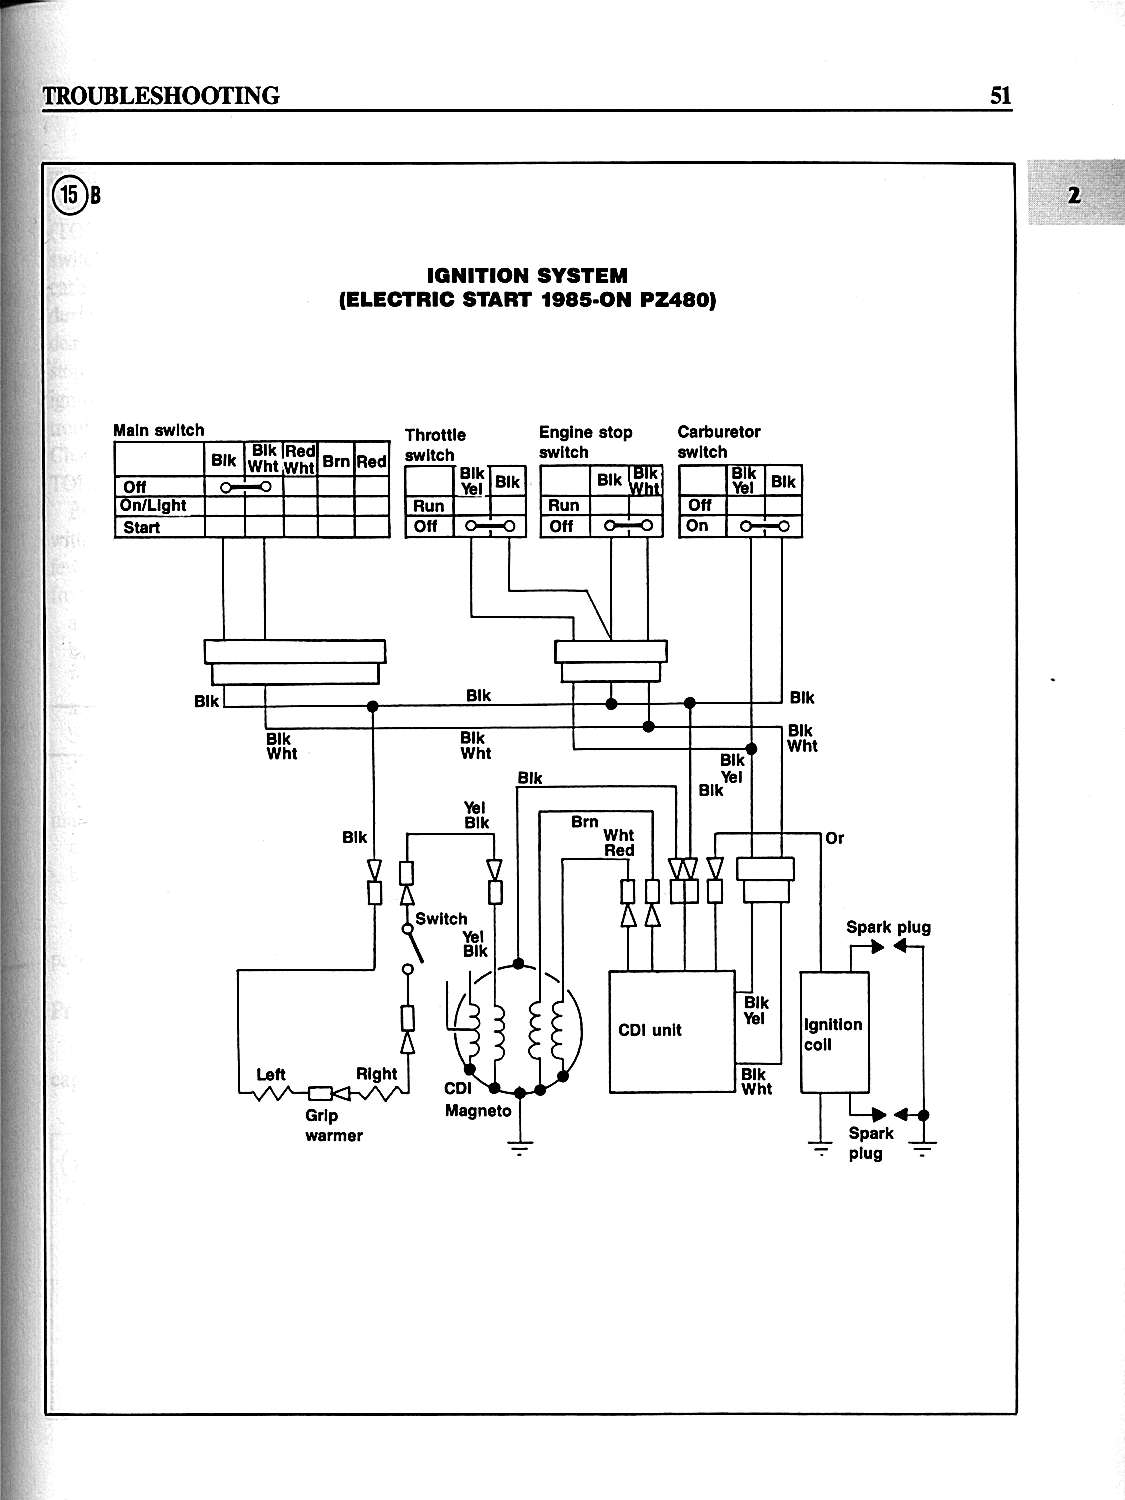 89 yamaha wiring diagrams electrical diagrams forum u2022 rh jimmellon co uk 89 yamaha warrior 350 wiring diagram